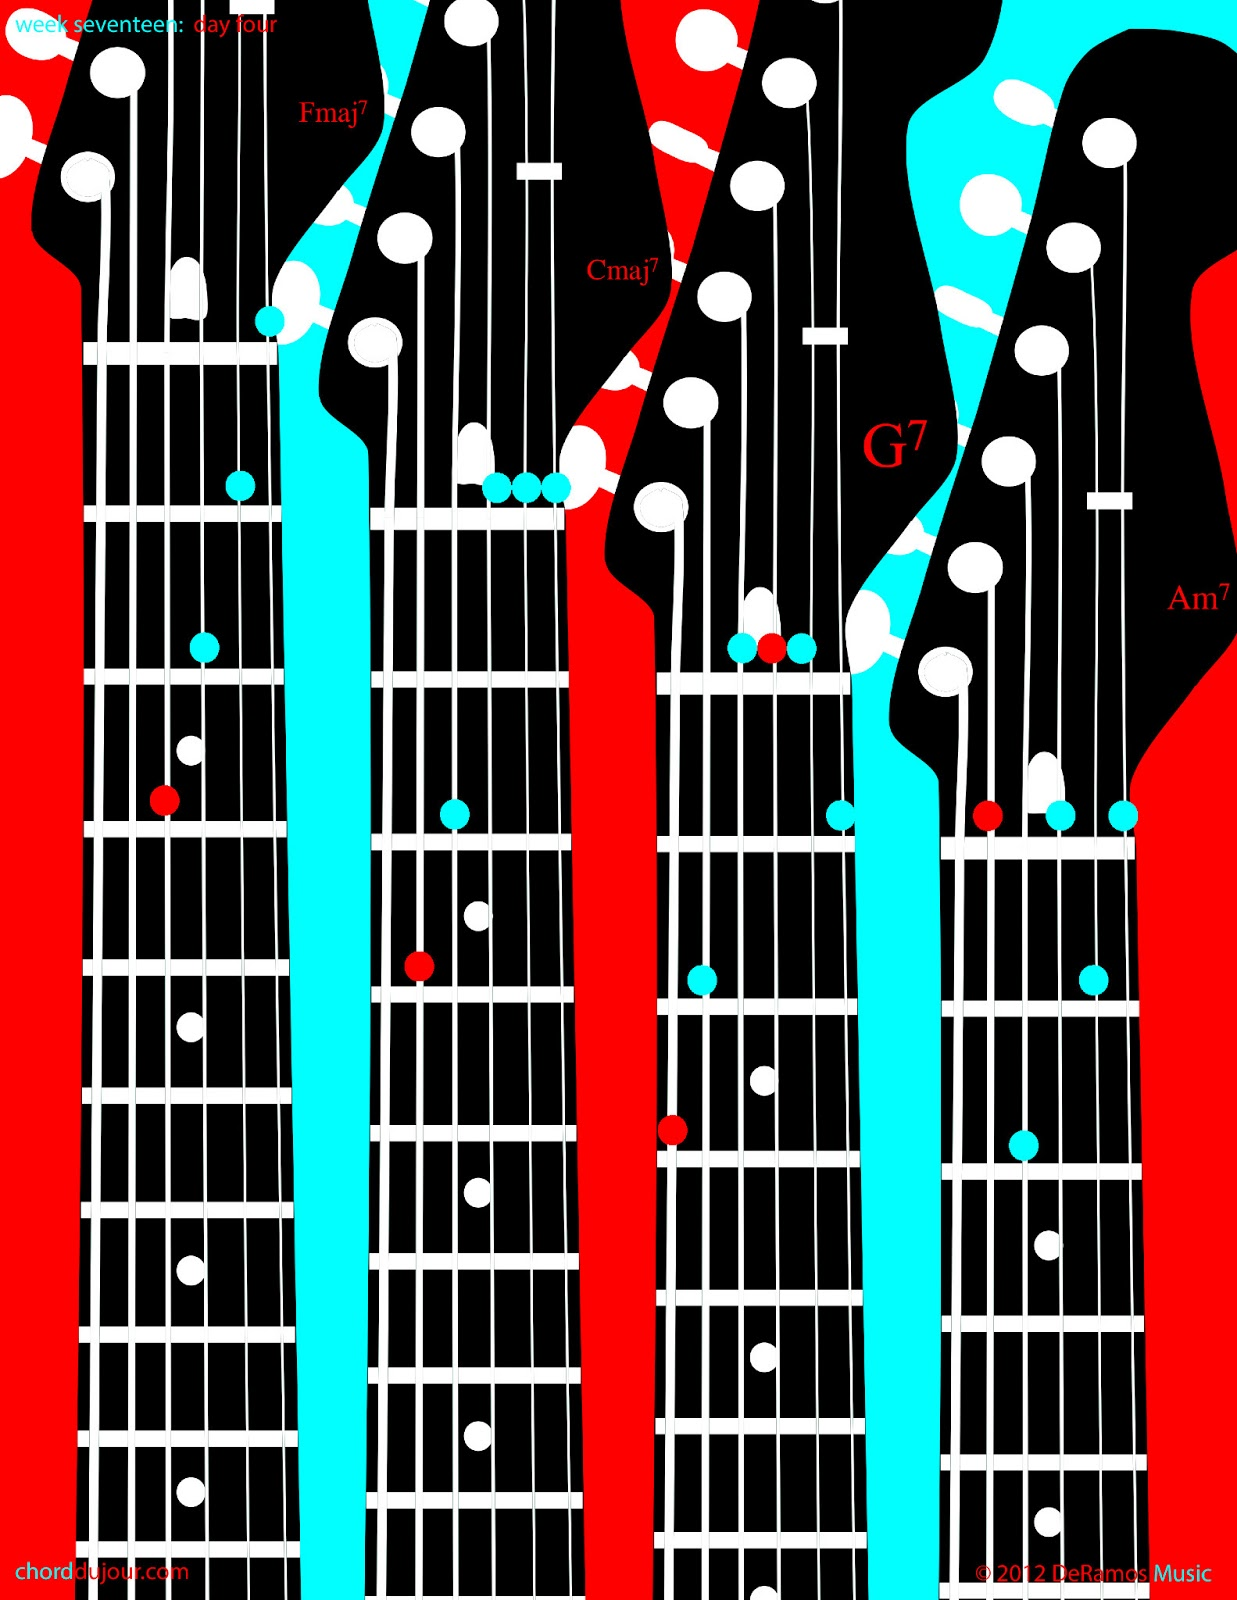 Chord Du Jour Four 7th Chords Four Chords With A Capo At The